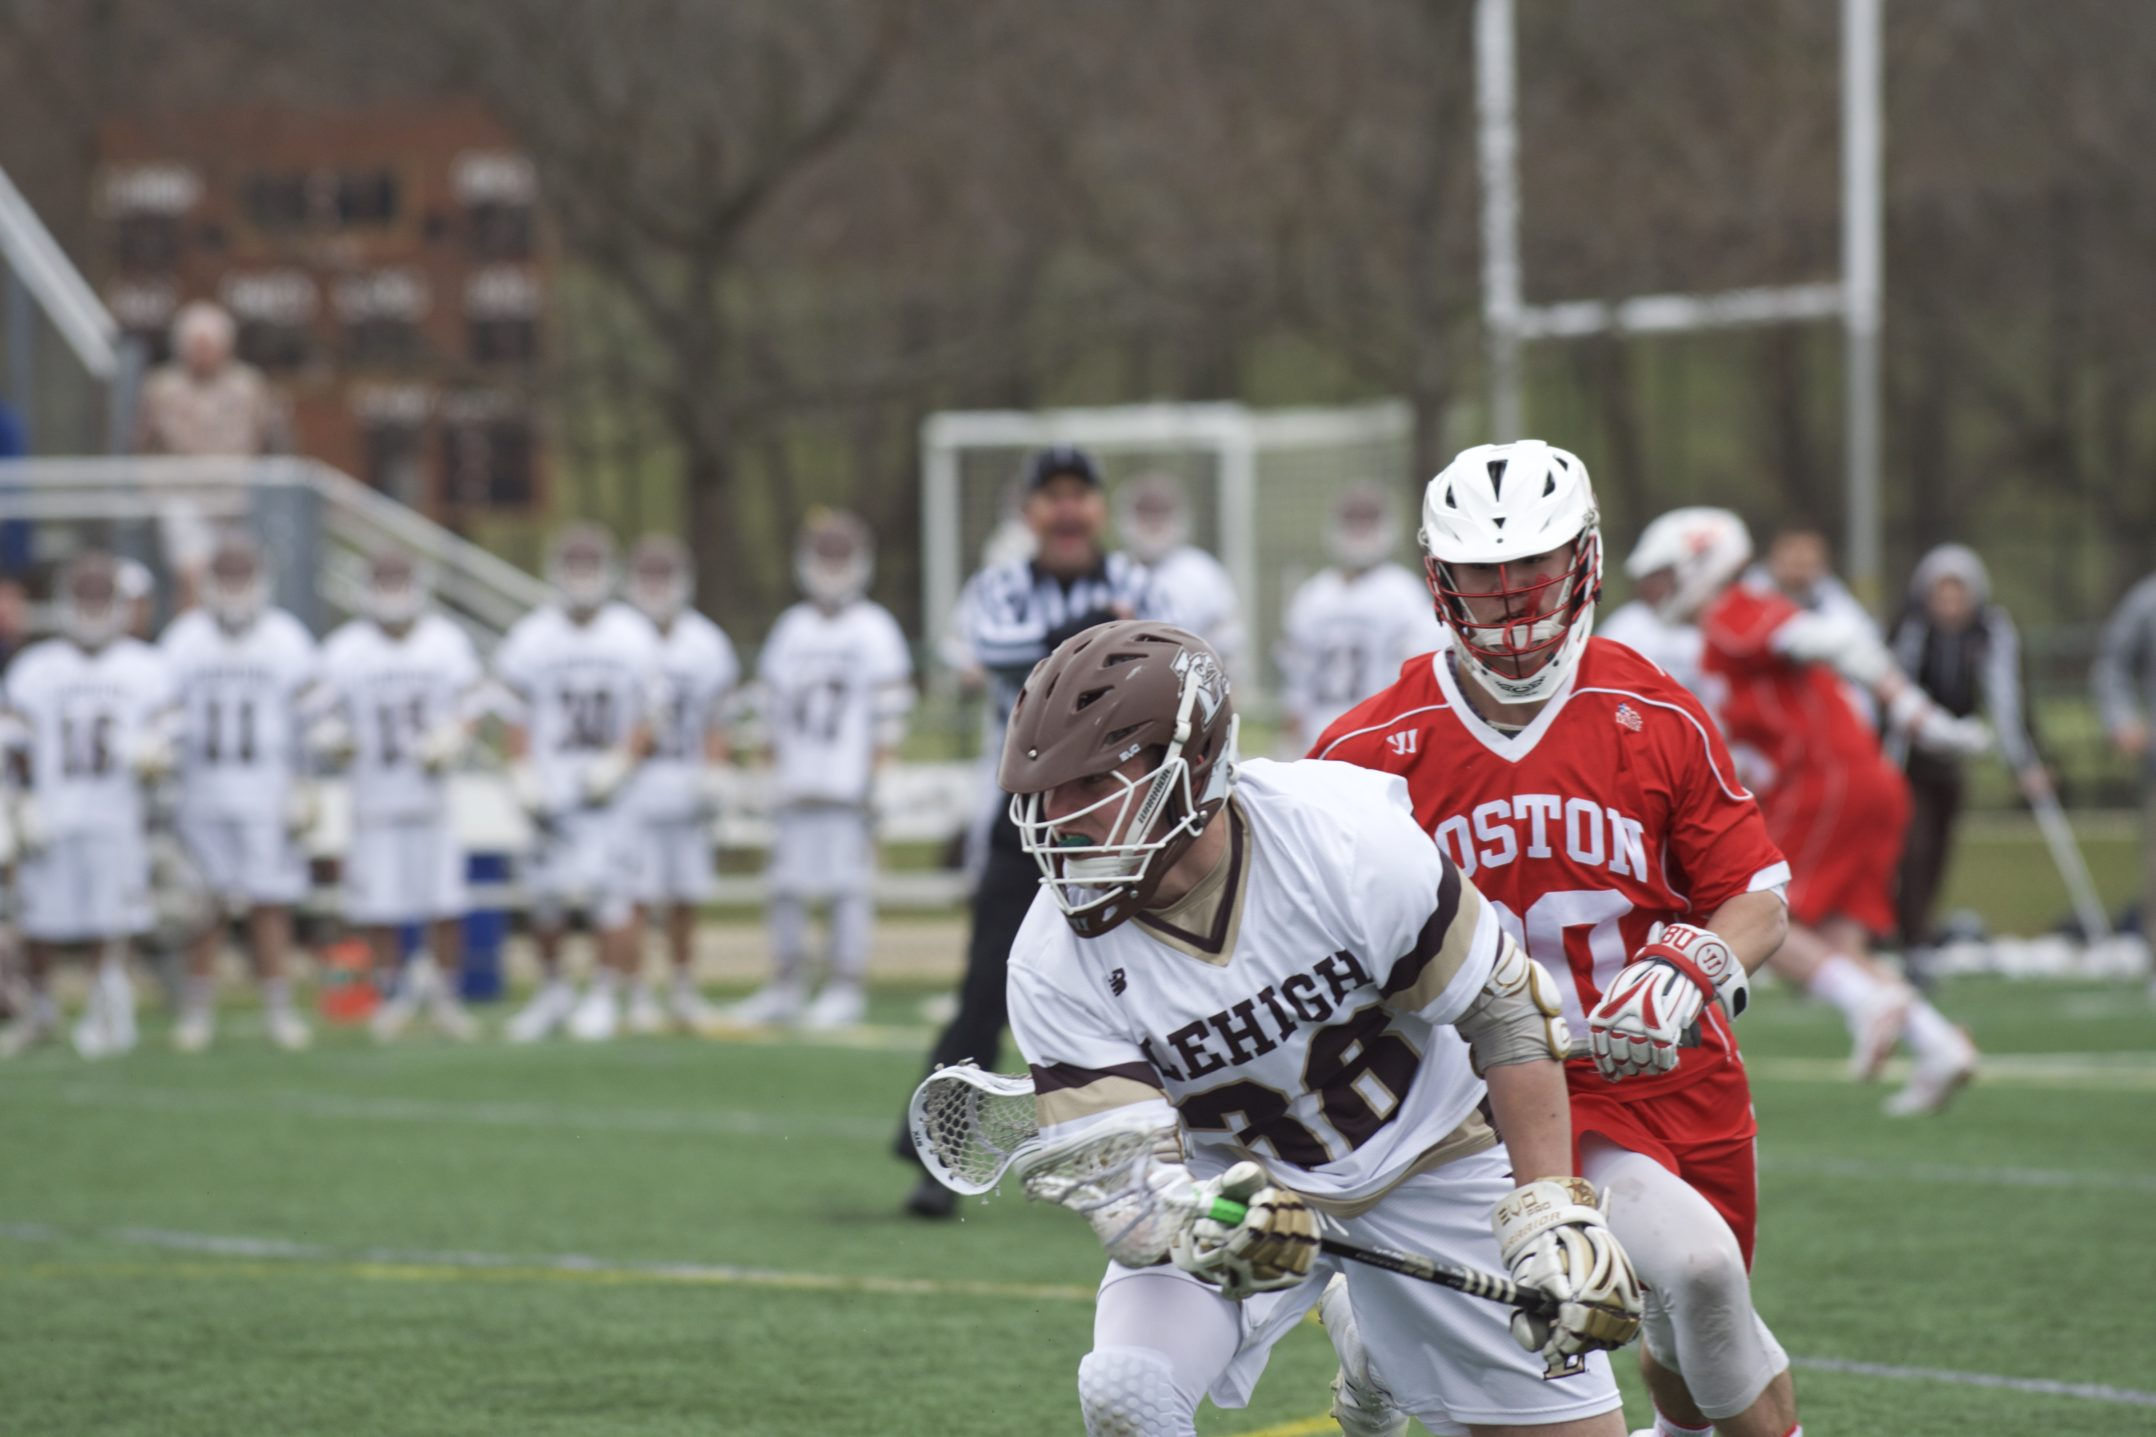 Lehigh freshman midfielder Conor Gaffney picks up a ground ball during the men's lacrosse game versus Boston University on Saturday, April 1, 2017, at the Ulrich Sports Complex. Gaffney has 71 ground balls so far this season. (Sarah Epstein/B&W Staff)